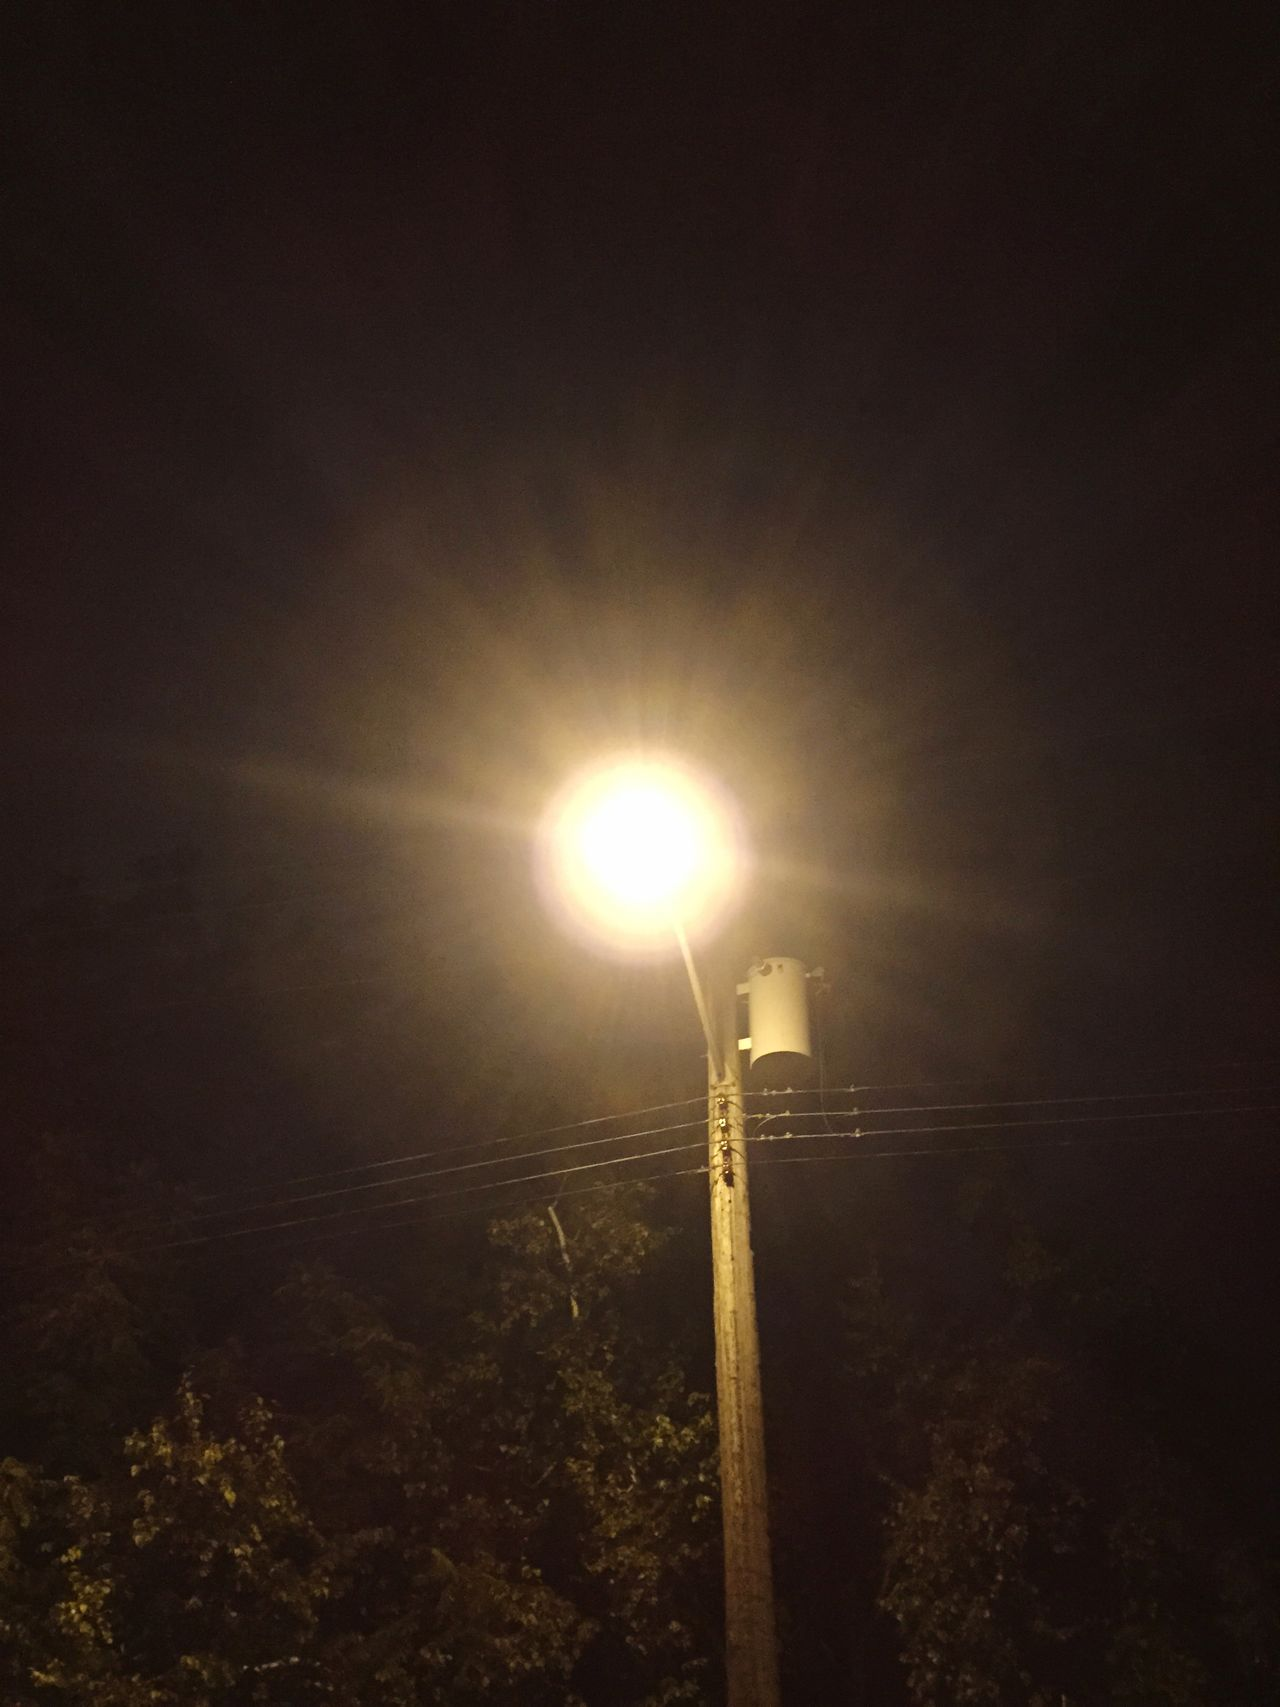 DesrochesPhotography NightTimeView Streetlight RightNight BrightSight PerfectCapture IncreasingTillt DopeEyeEmPhotos RealistLivin BeTheImage